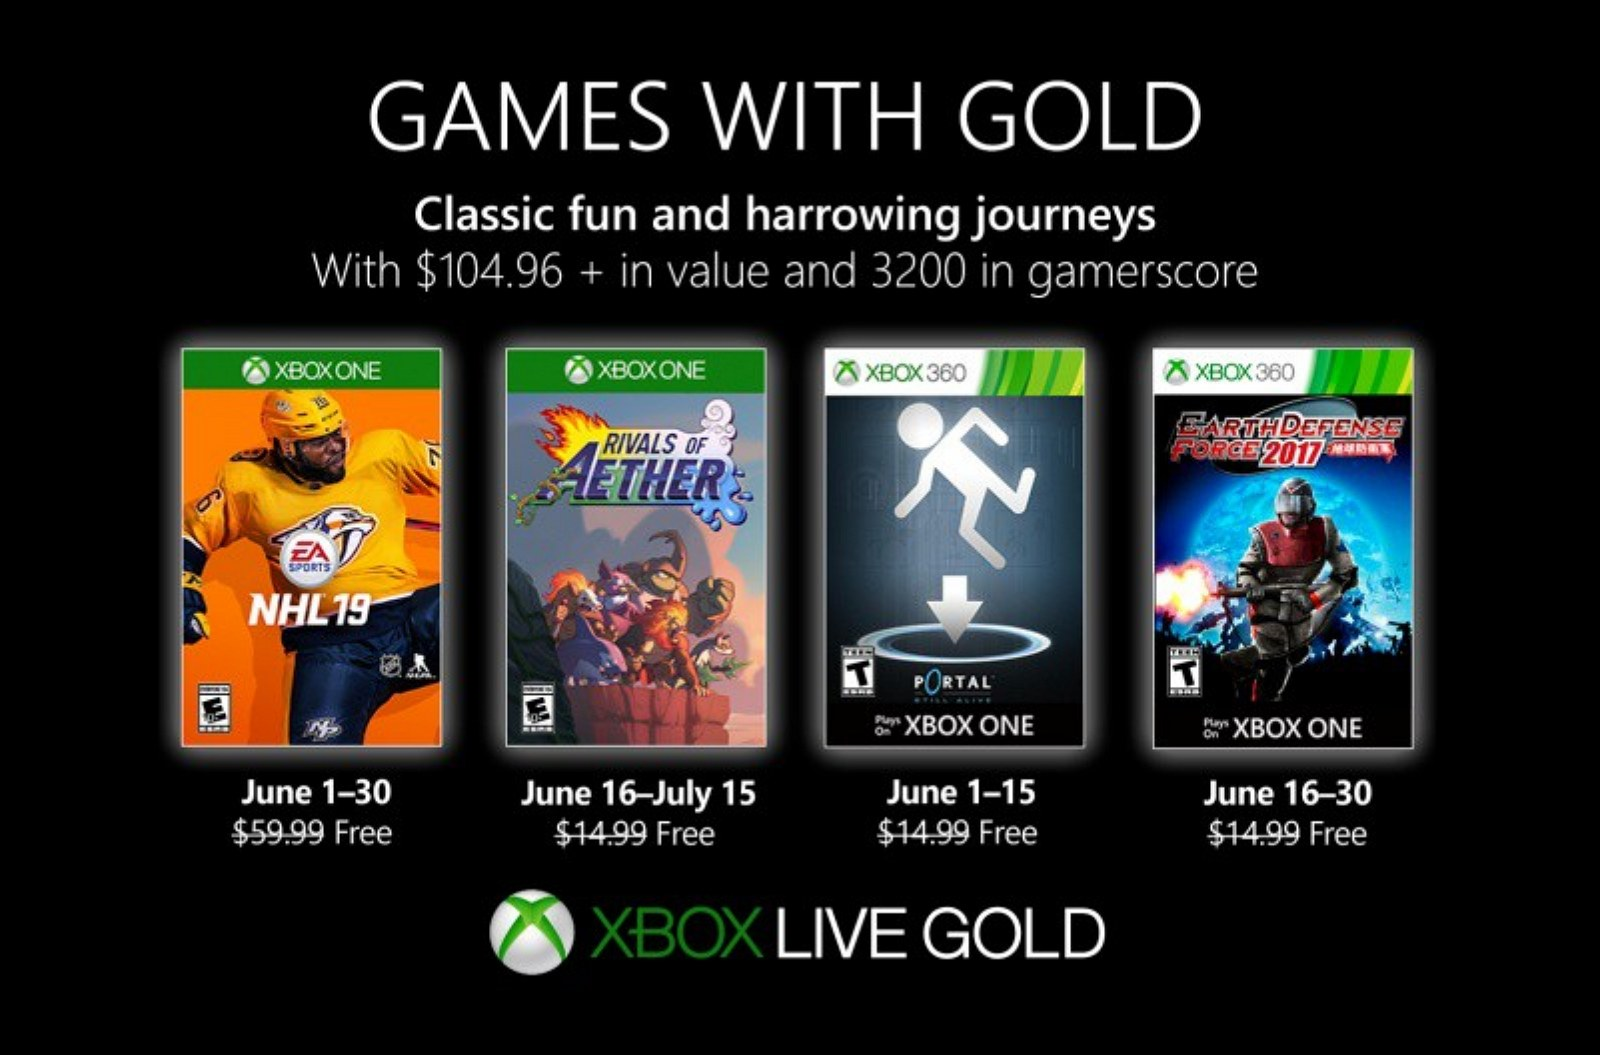 Xbox Games with Gold for June 2019